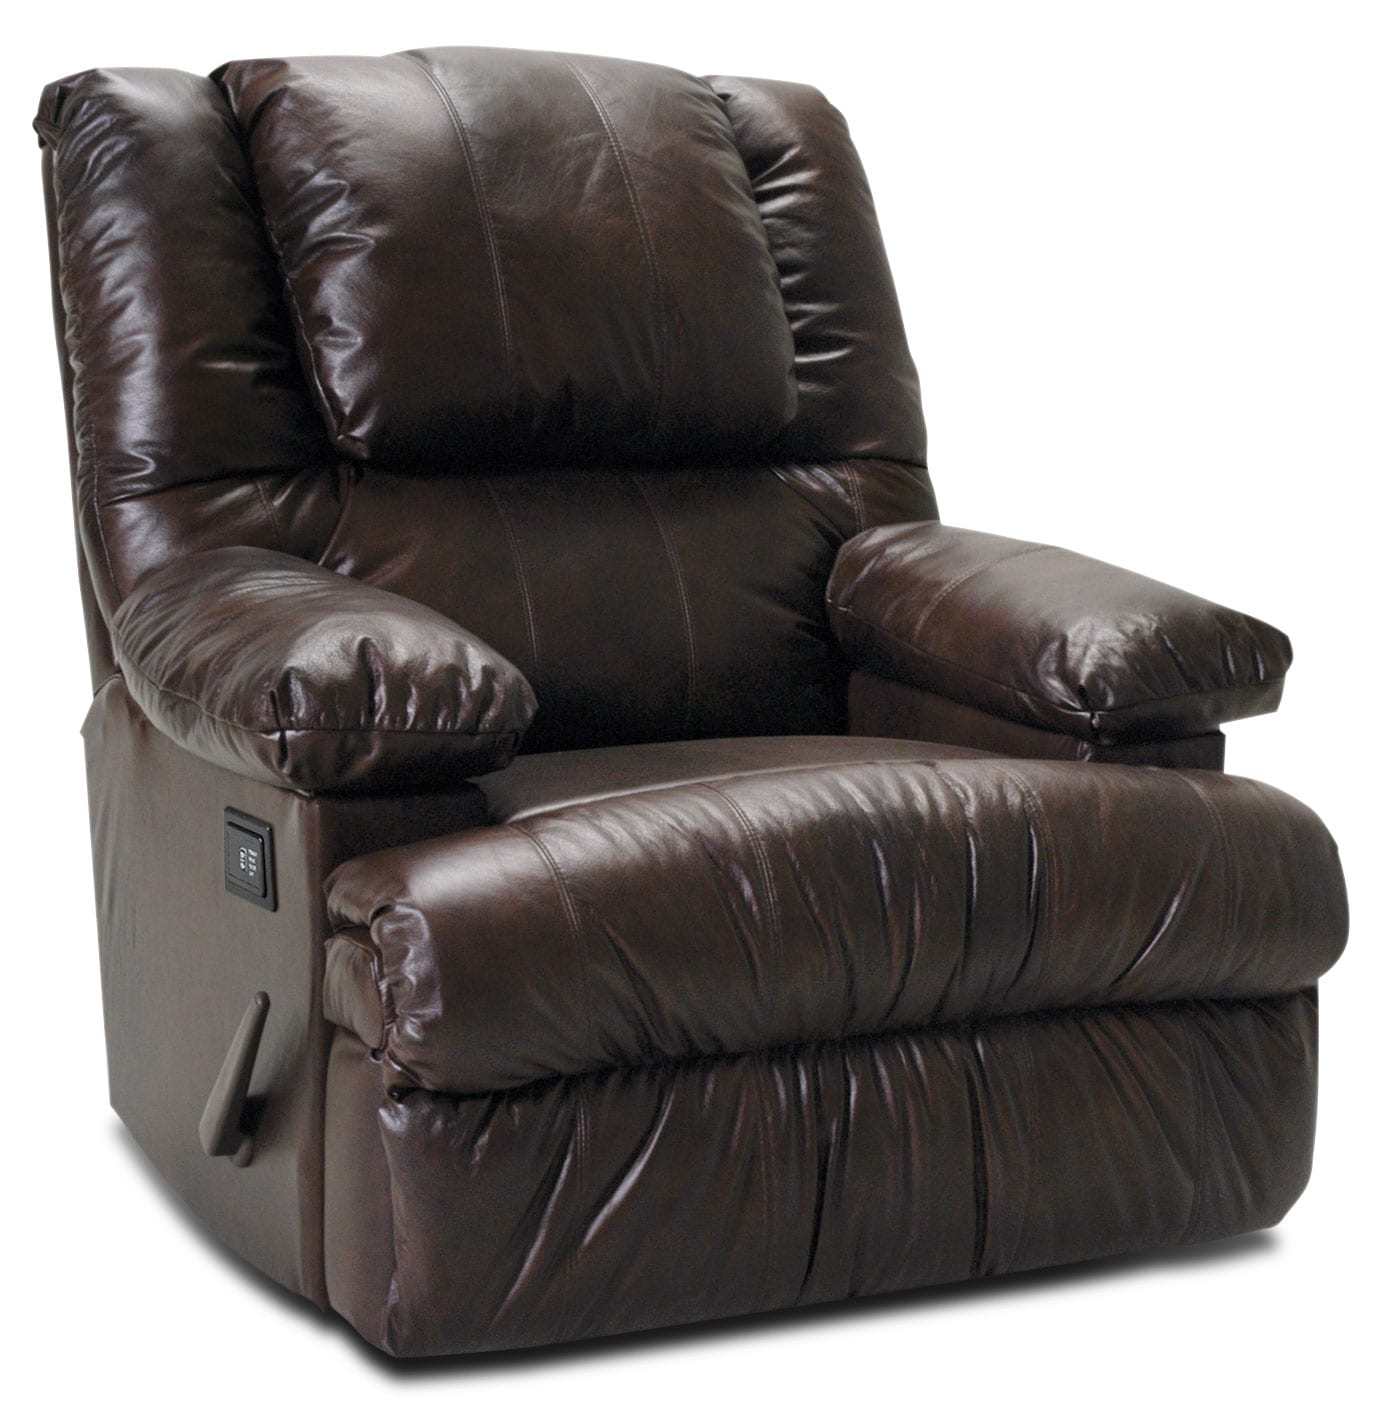 Living Room Furniture - Designed2B Recliner 5598 Genuine Leather Massage Recliner with Storage Arms - Chocolate